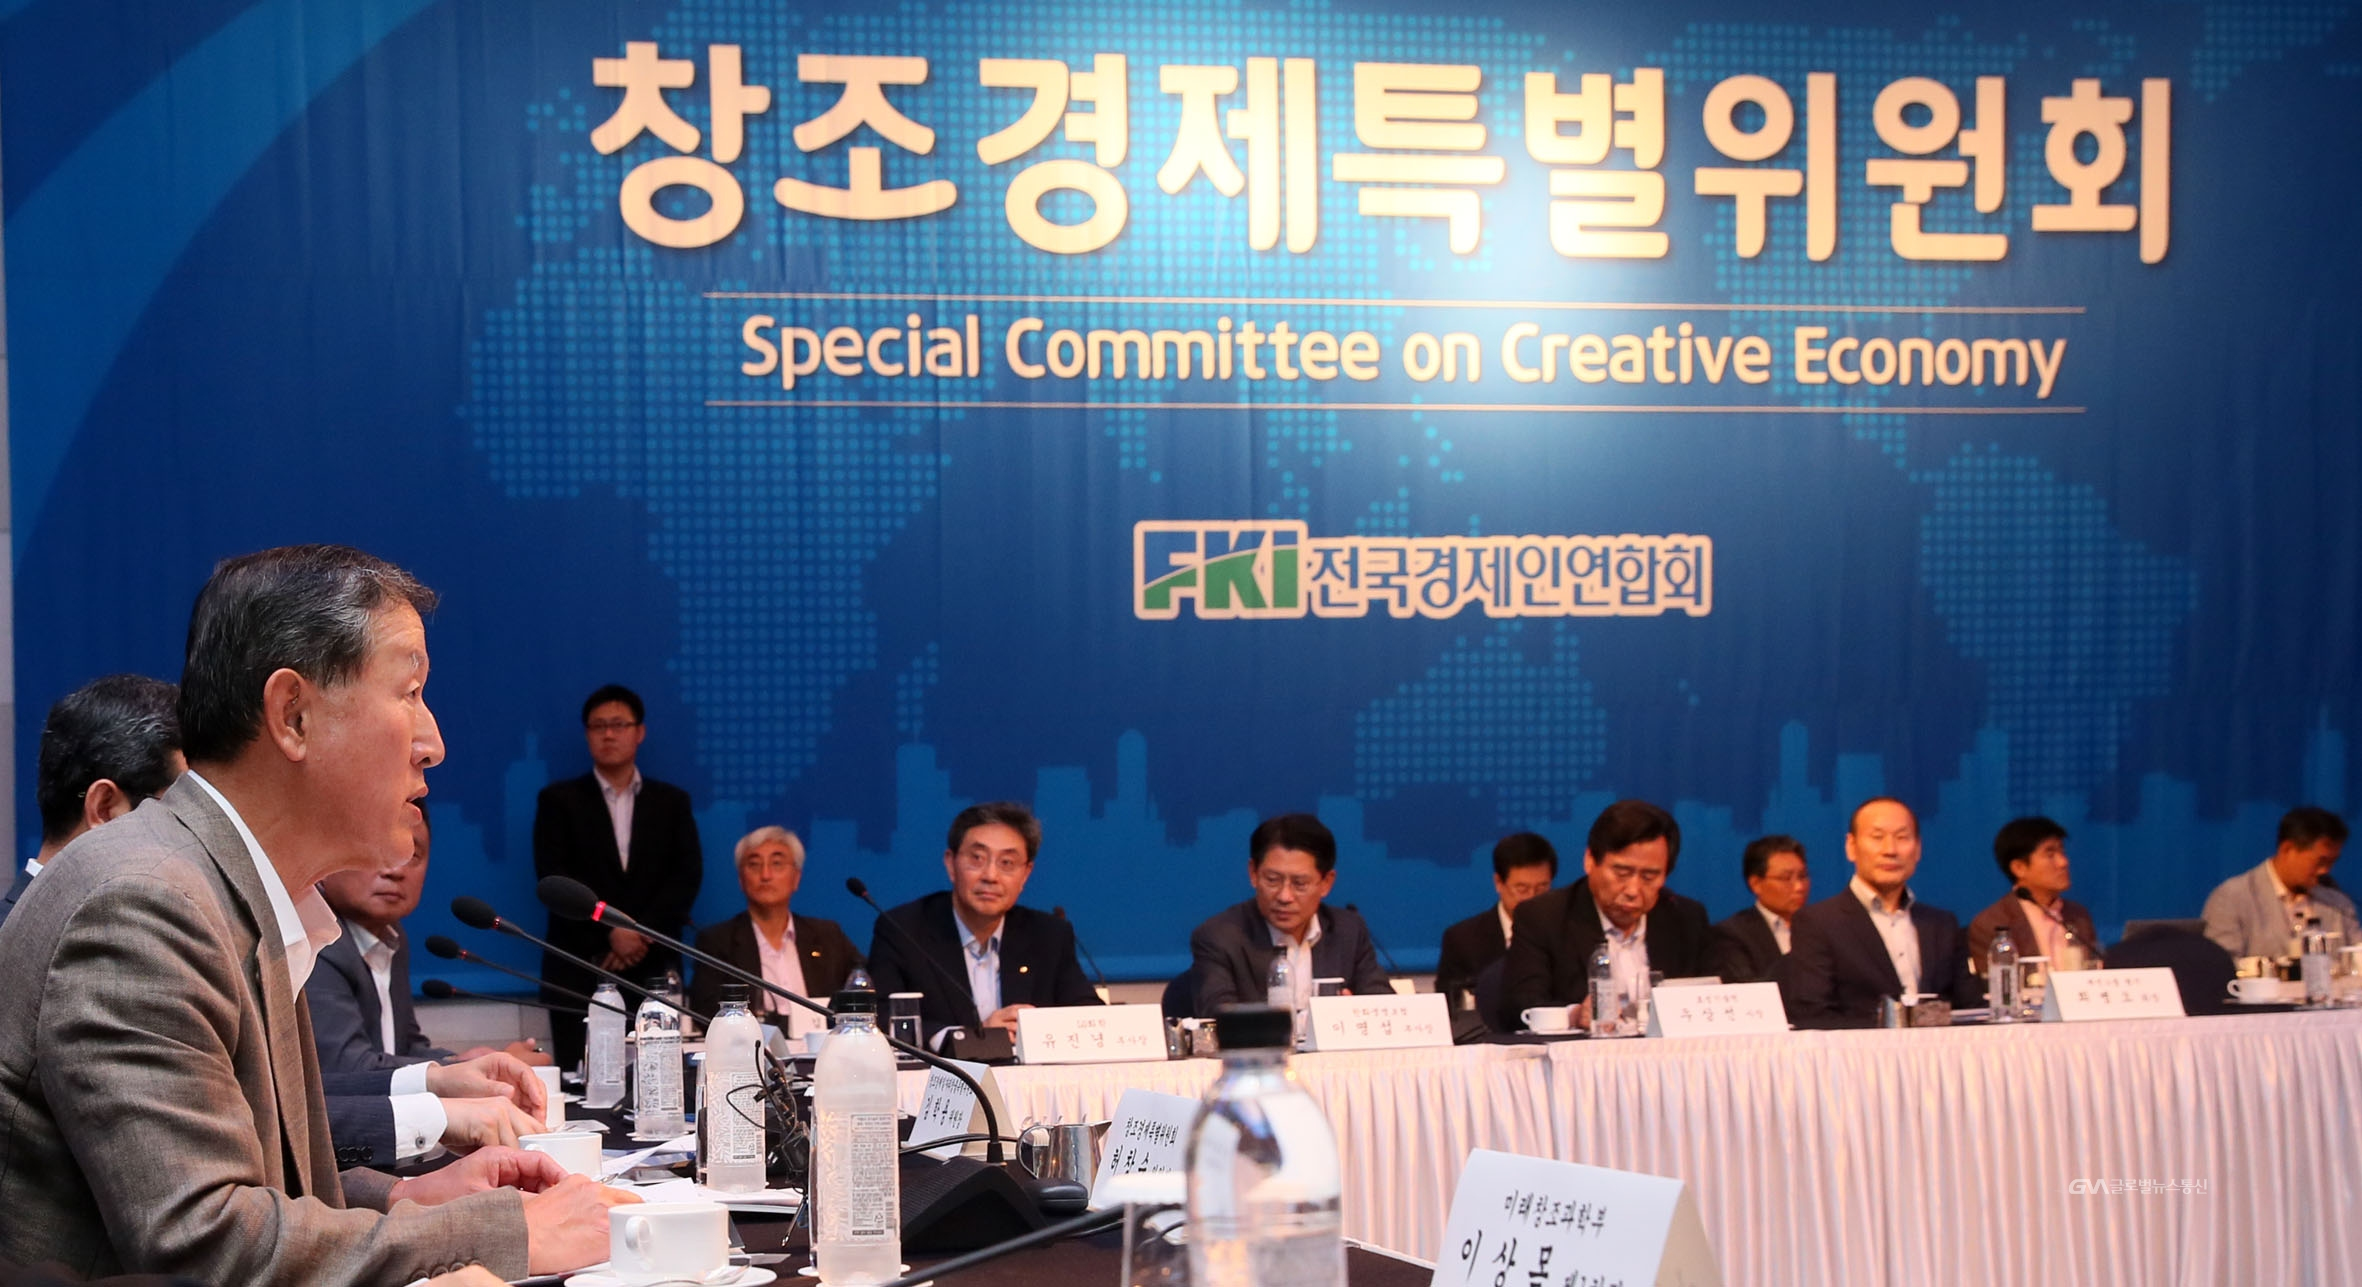 The Federation of Korean Industries holds the Special Committee on Creative Economy on July 10 to analyze the government's creative economy policy.